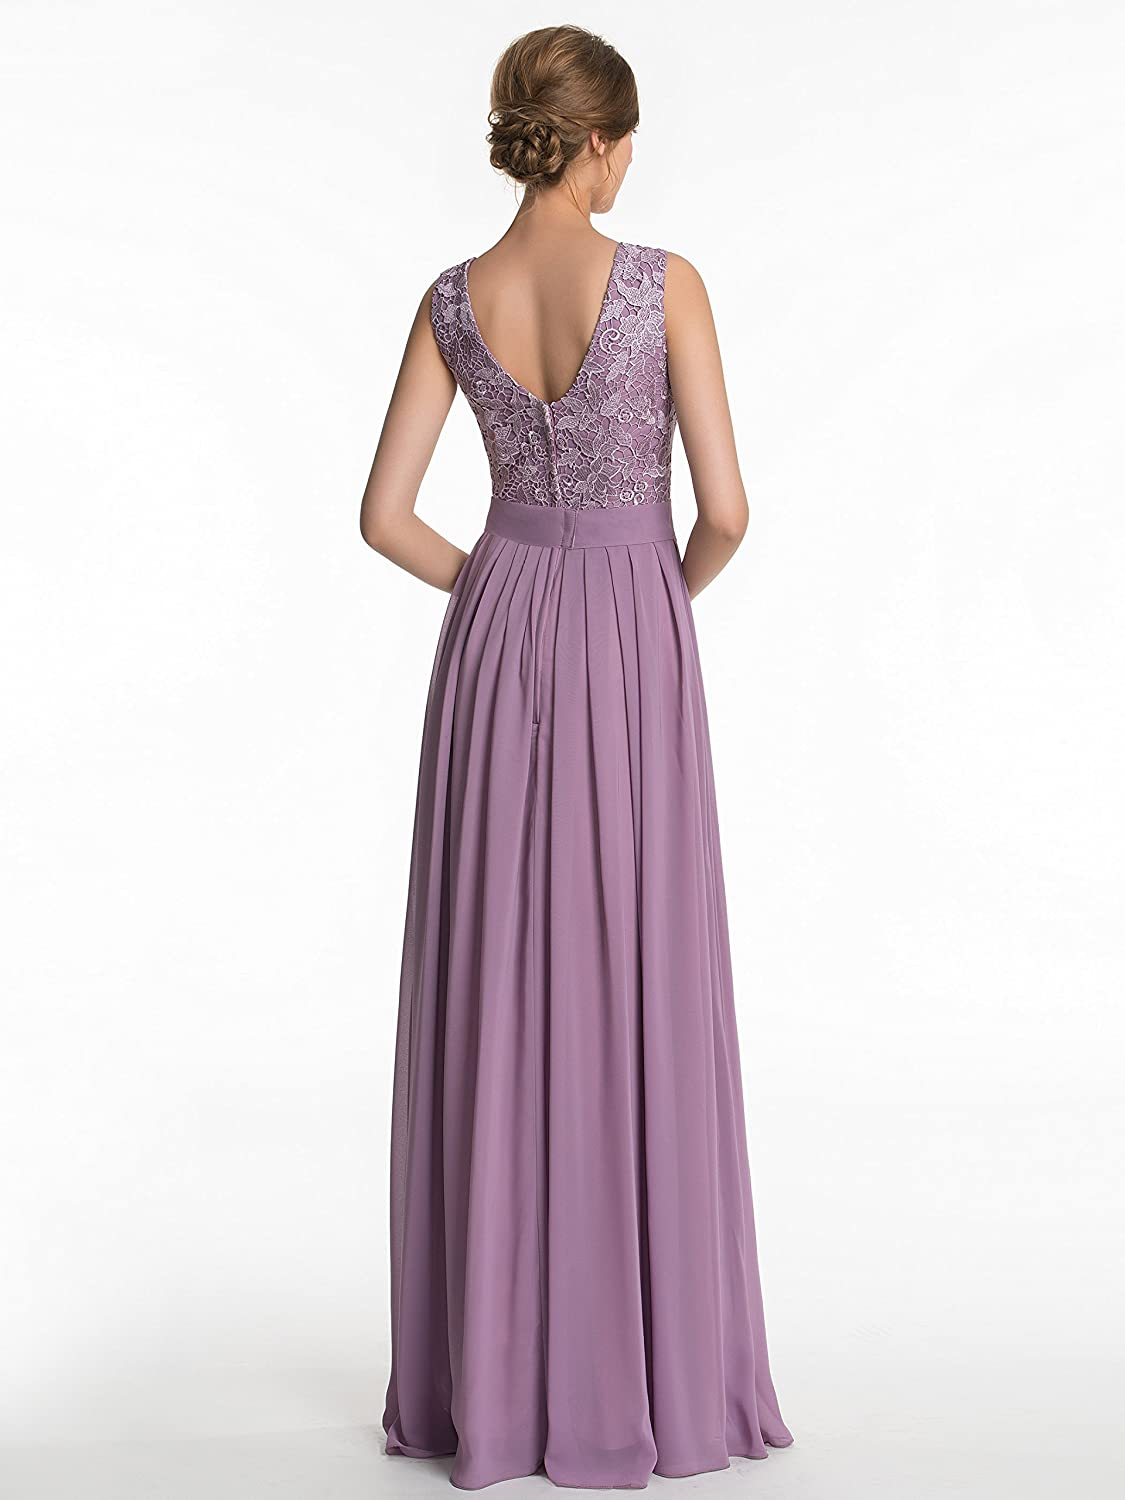 CLOCOLOR Women's Long A-line Lace Bridesmaids Dresses Maid of the Honor Dress Evening Party Gowns